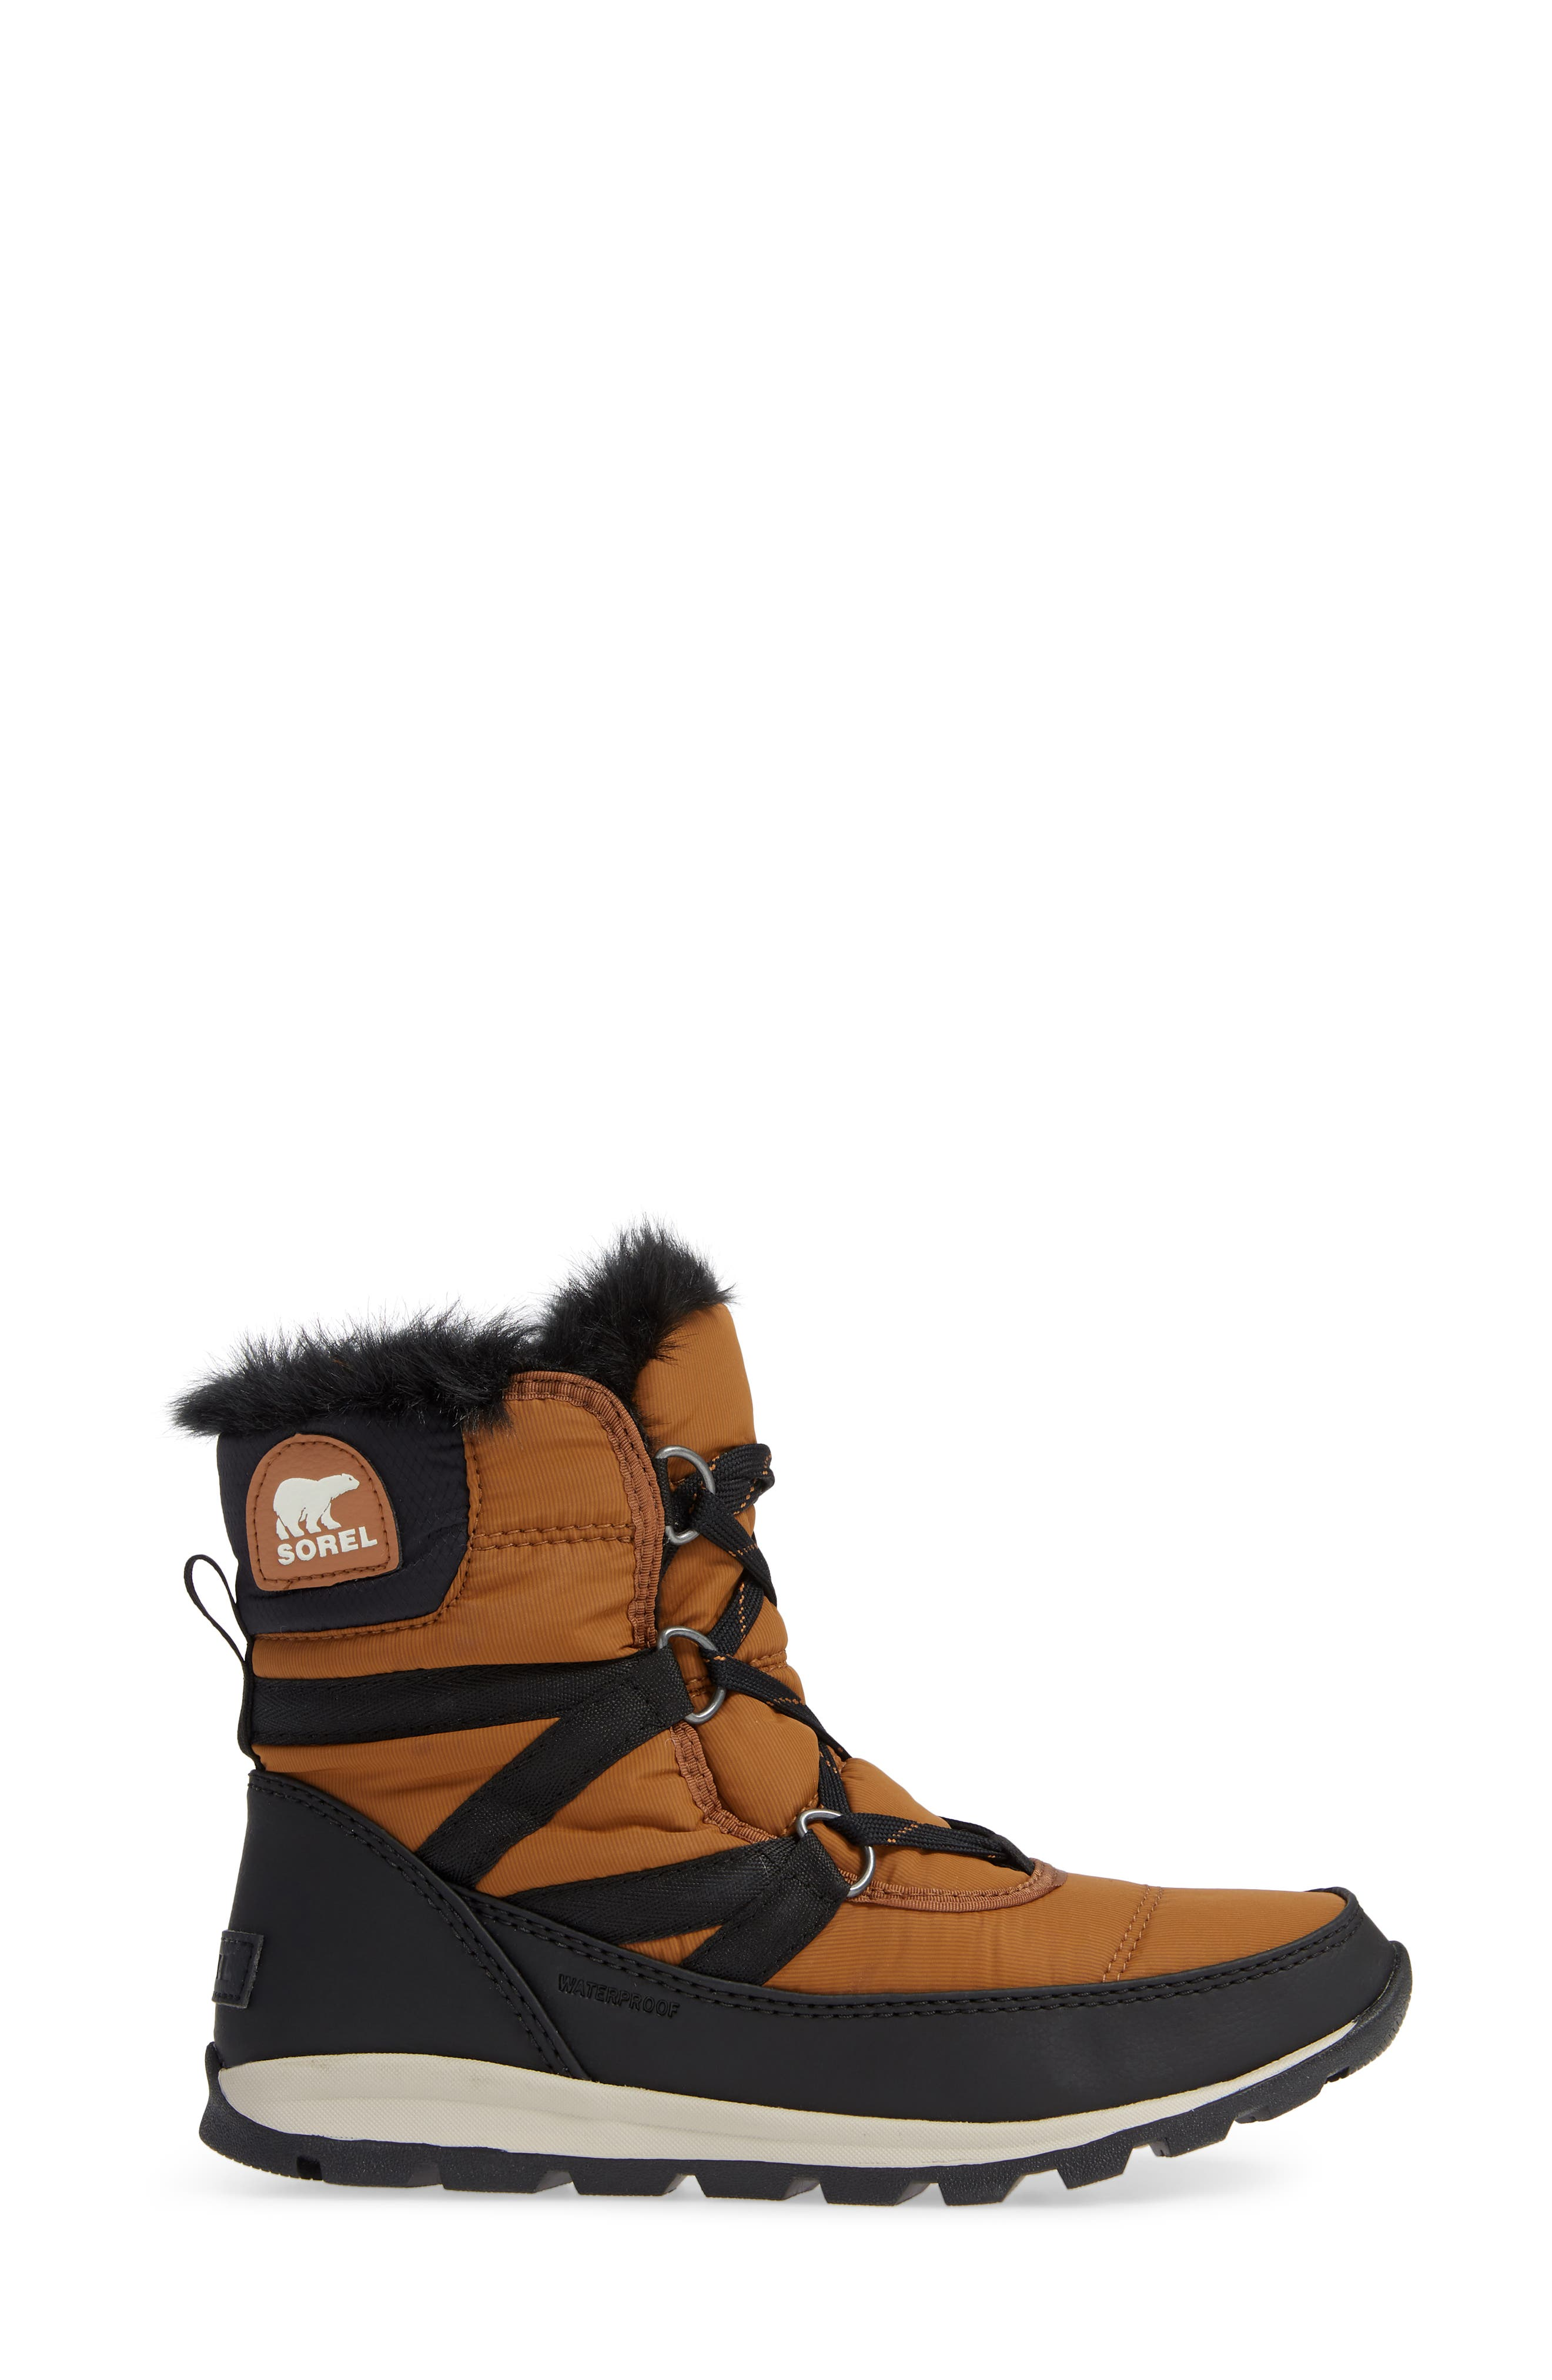 Whitney Snow Bootie,                             Alternate thumbnail 3, color,                             CAMEL BROWN